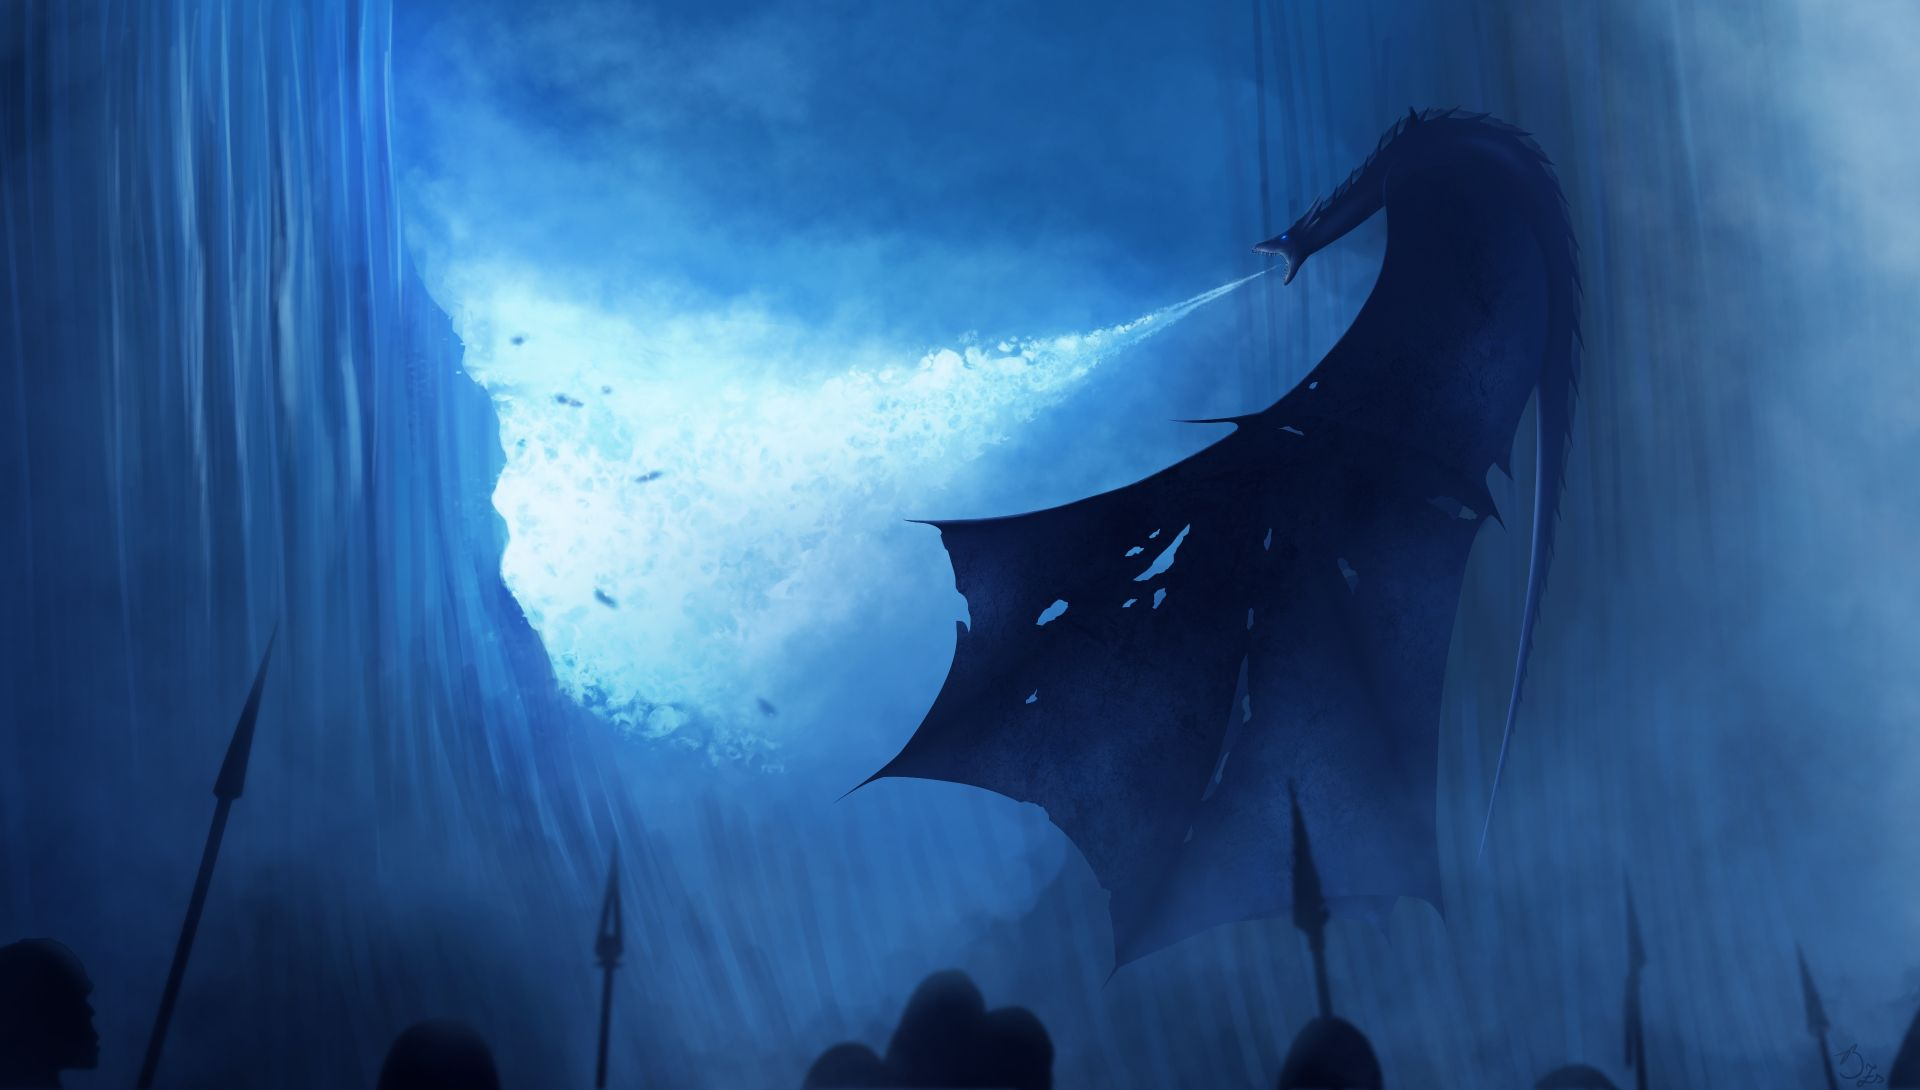 Game of Thrones wall and blue dragon